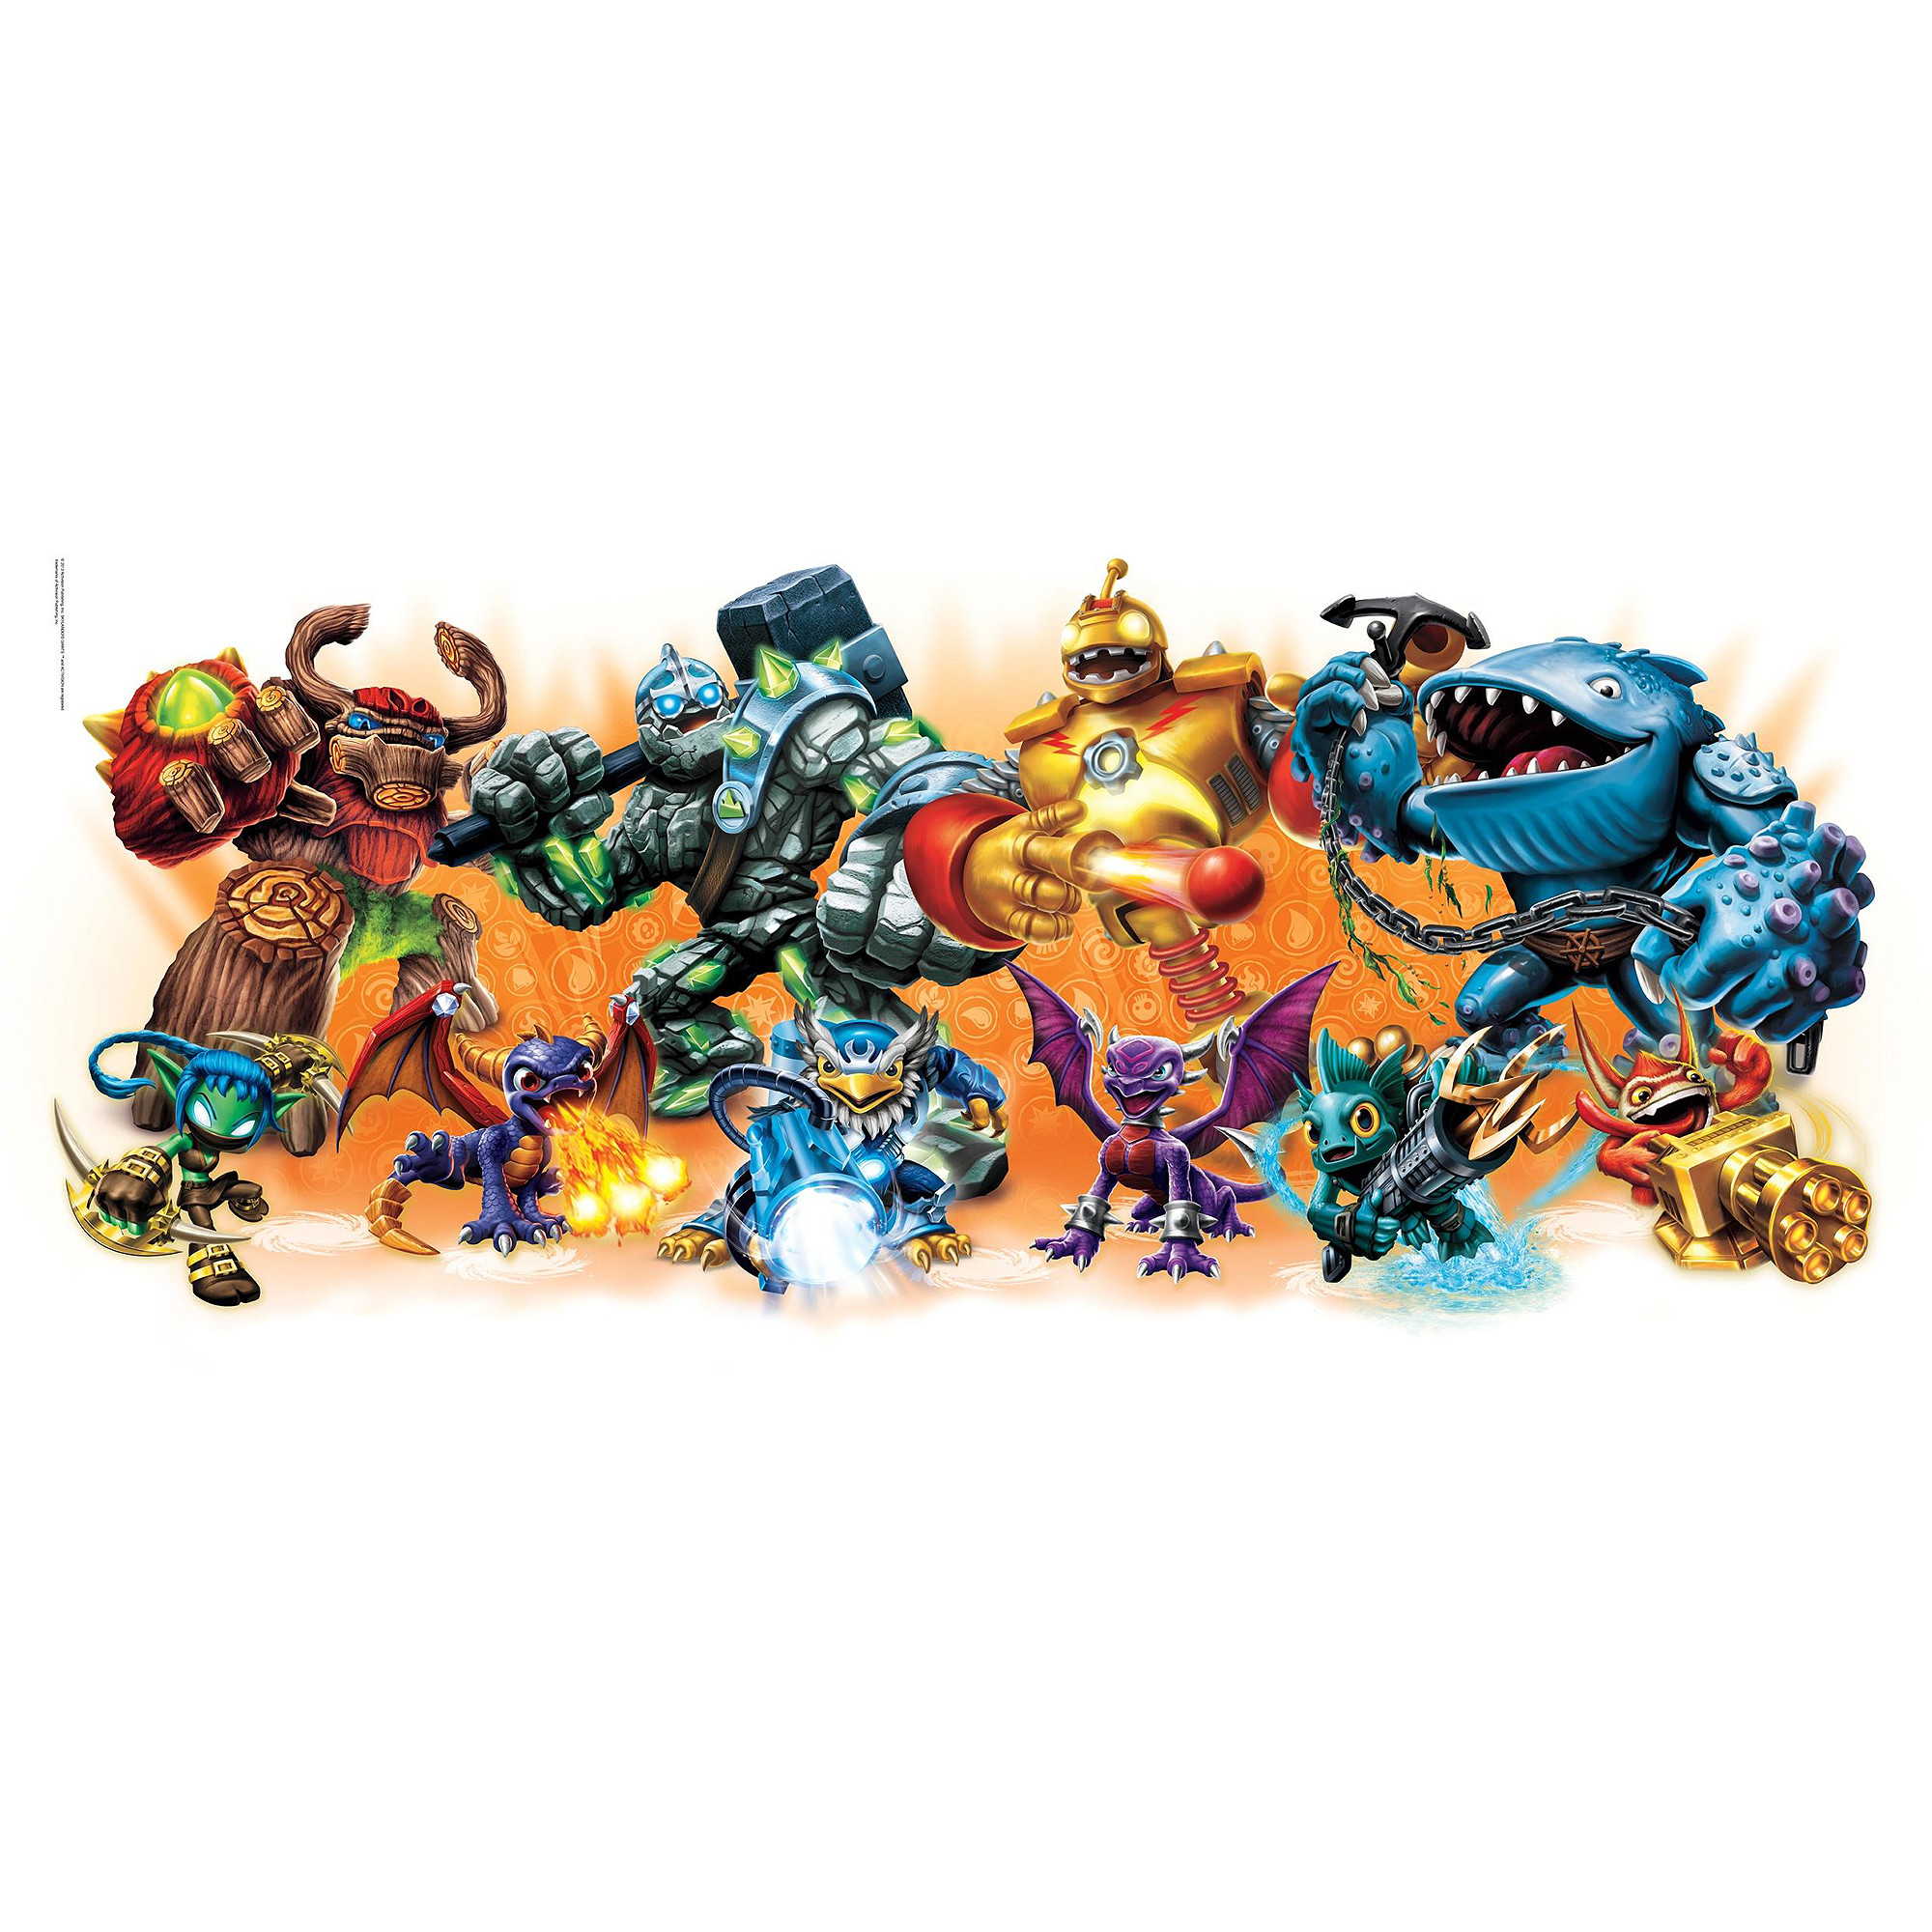 1920x1080 Skylanders: Trap Team   Environment Chompy Mountain 1920x1080  Wallpaper